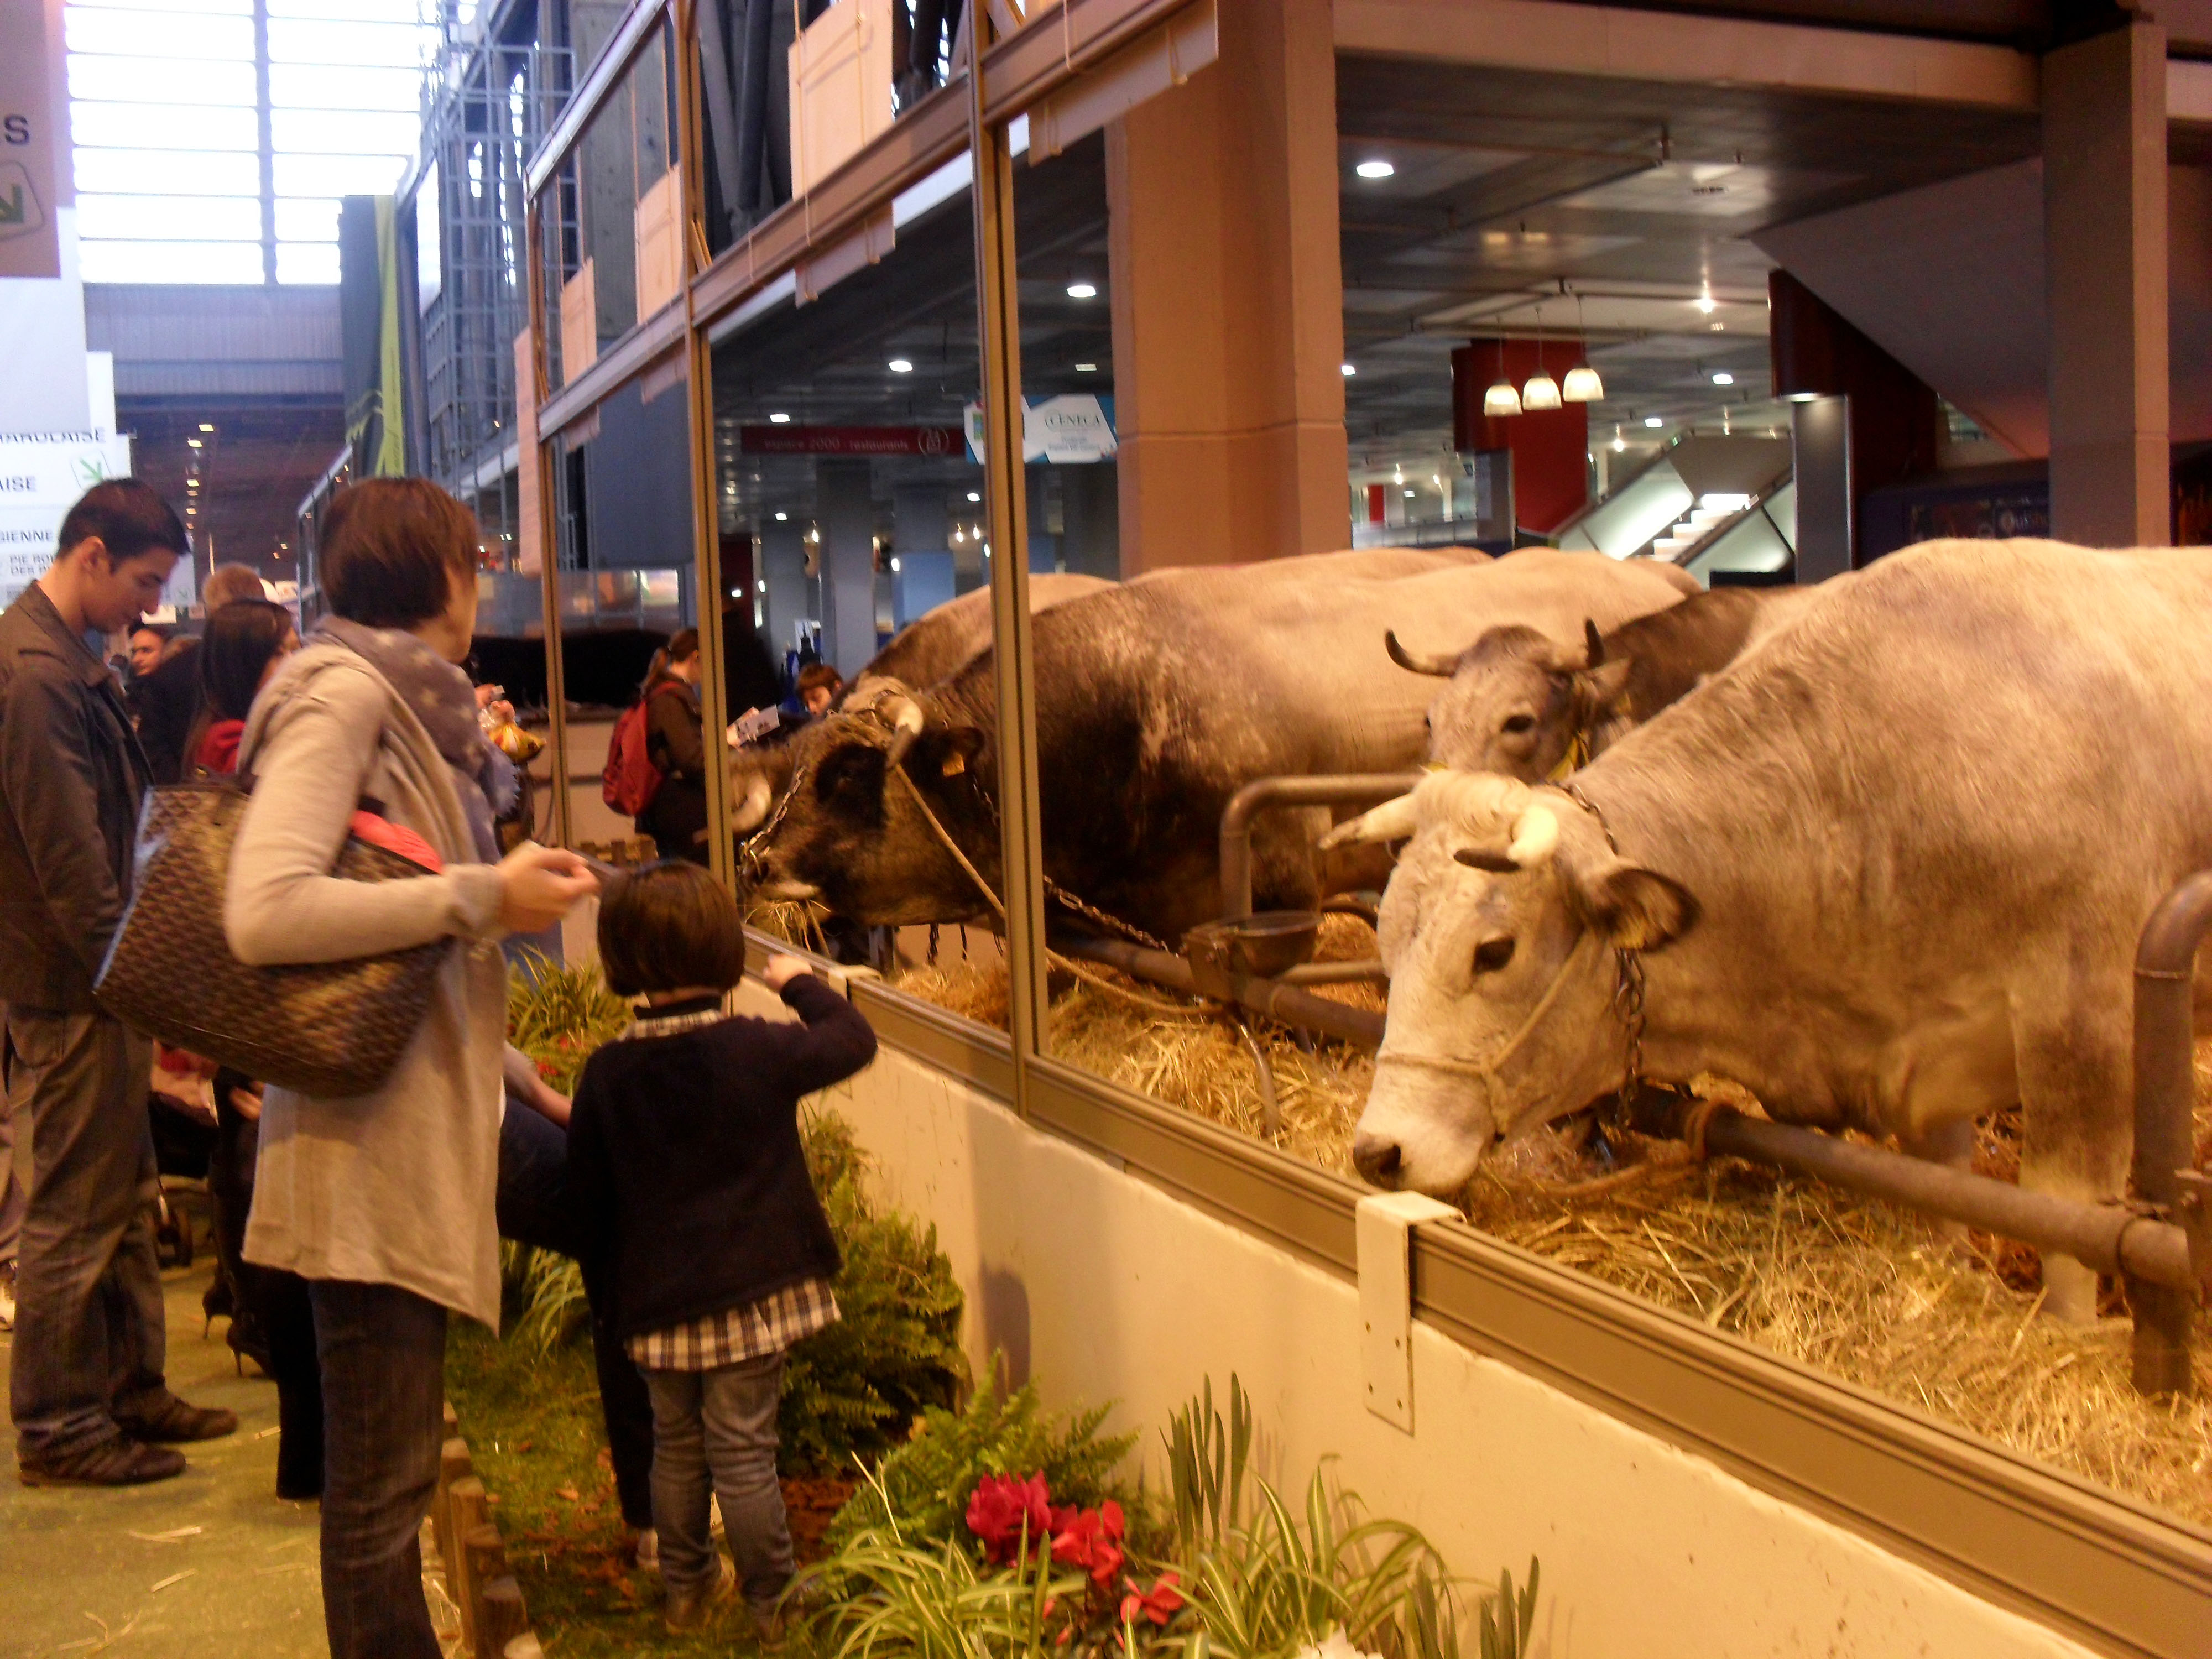 France jolie paris - Salon de l agriculture place ...